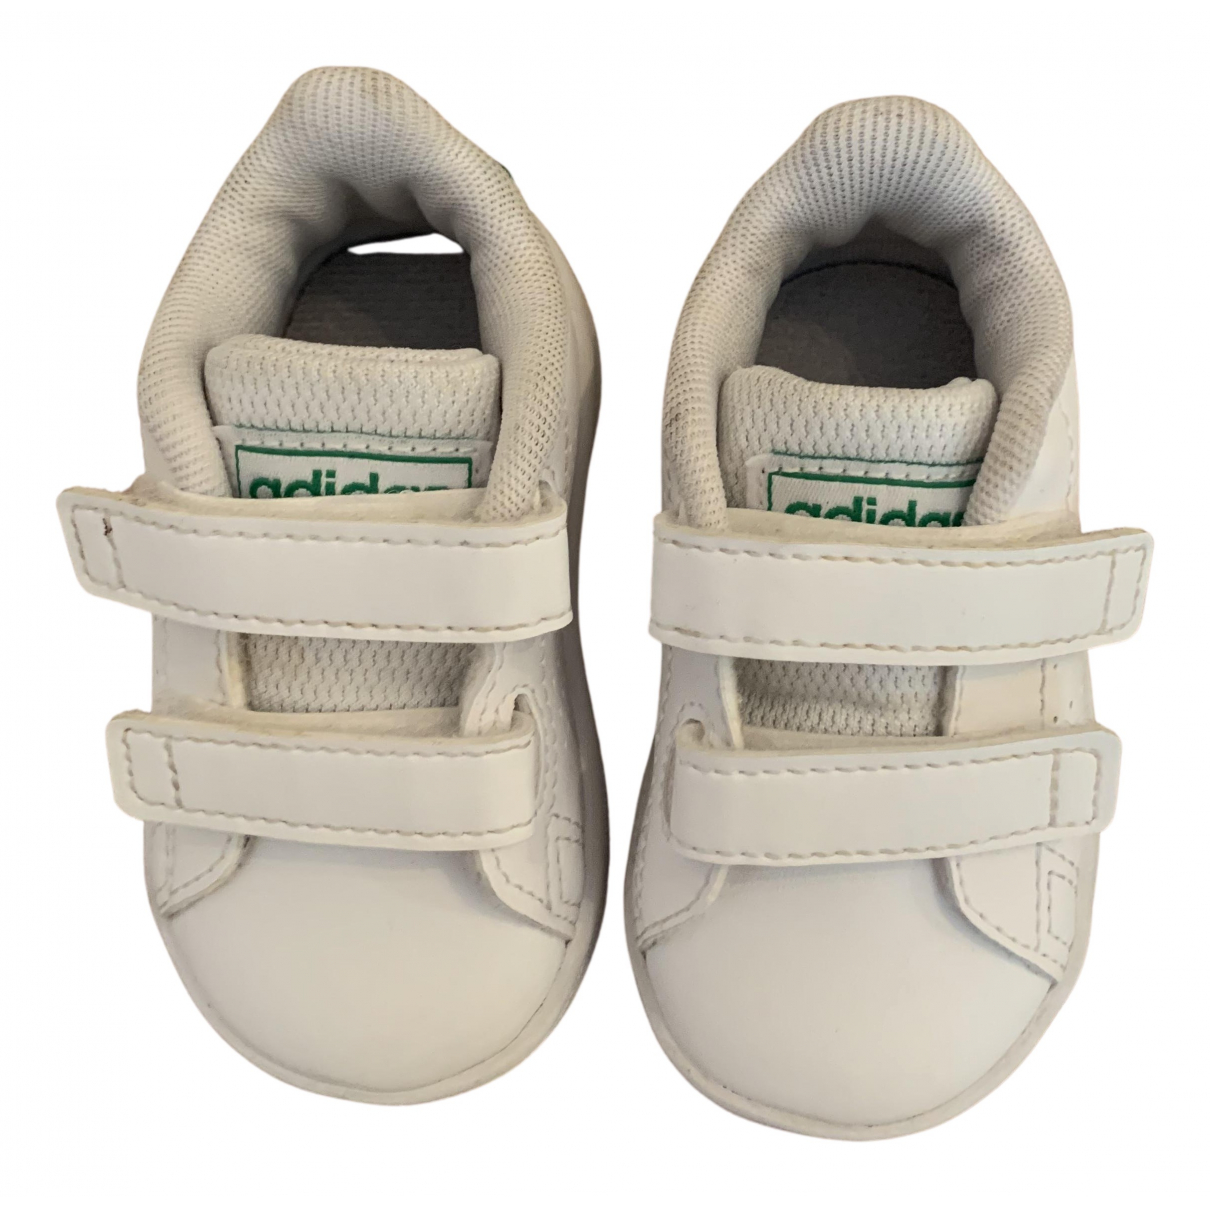 Adidas - Baskets Stan Smith pour enfant en cuir - blanc